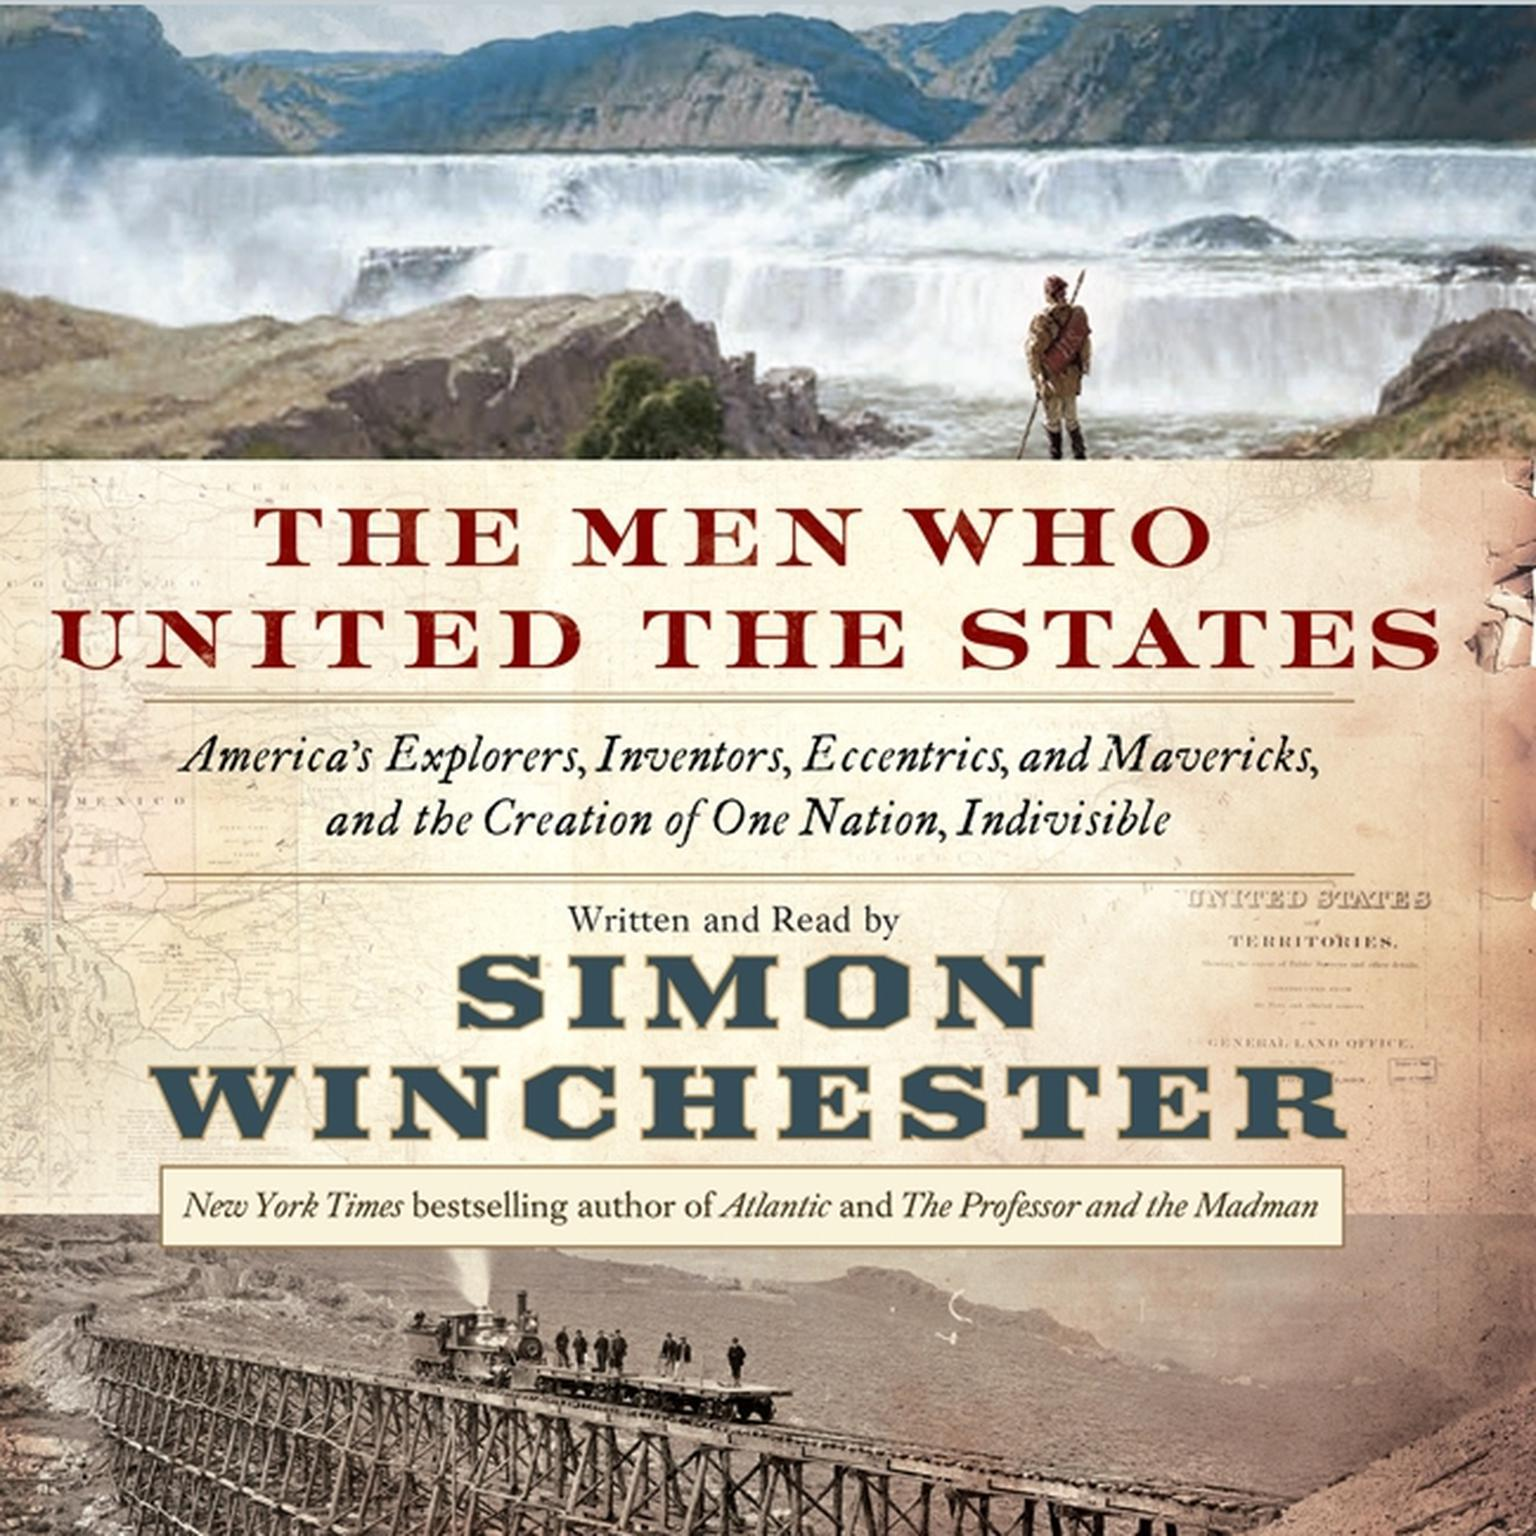 Printable The Men Who United the States: America's Explorers, Inventors, Eccentrics and Mavericks, and the Creation of One Nation, Indivisible Audiobook Cover Art